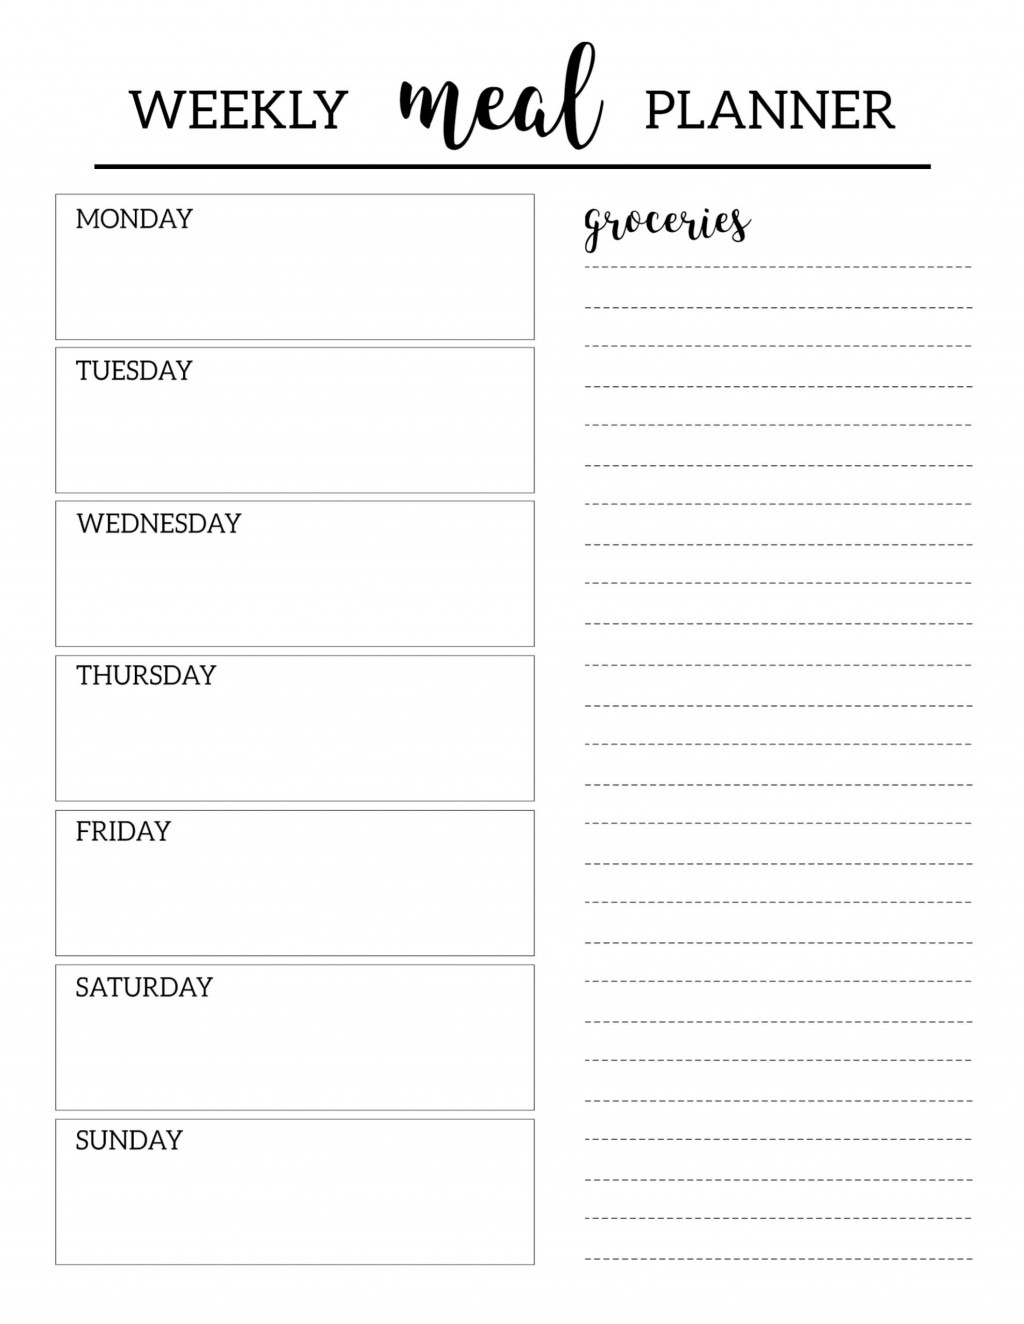 006 Rare Meal Plan Calendar Template Inspiration  Excel Weekly 30 DayLarge